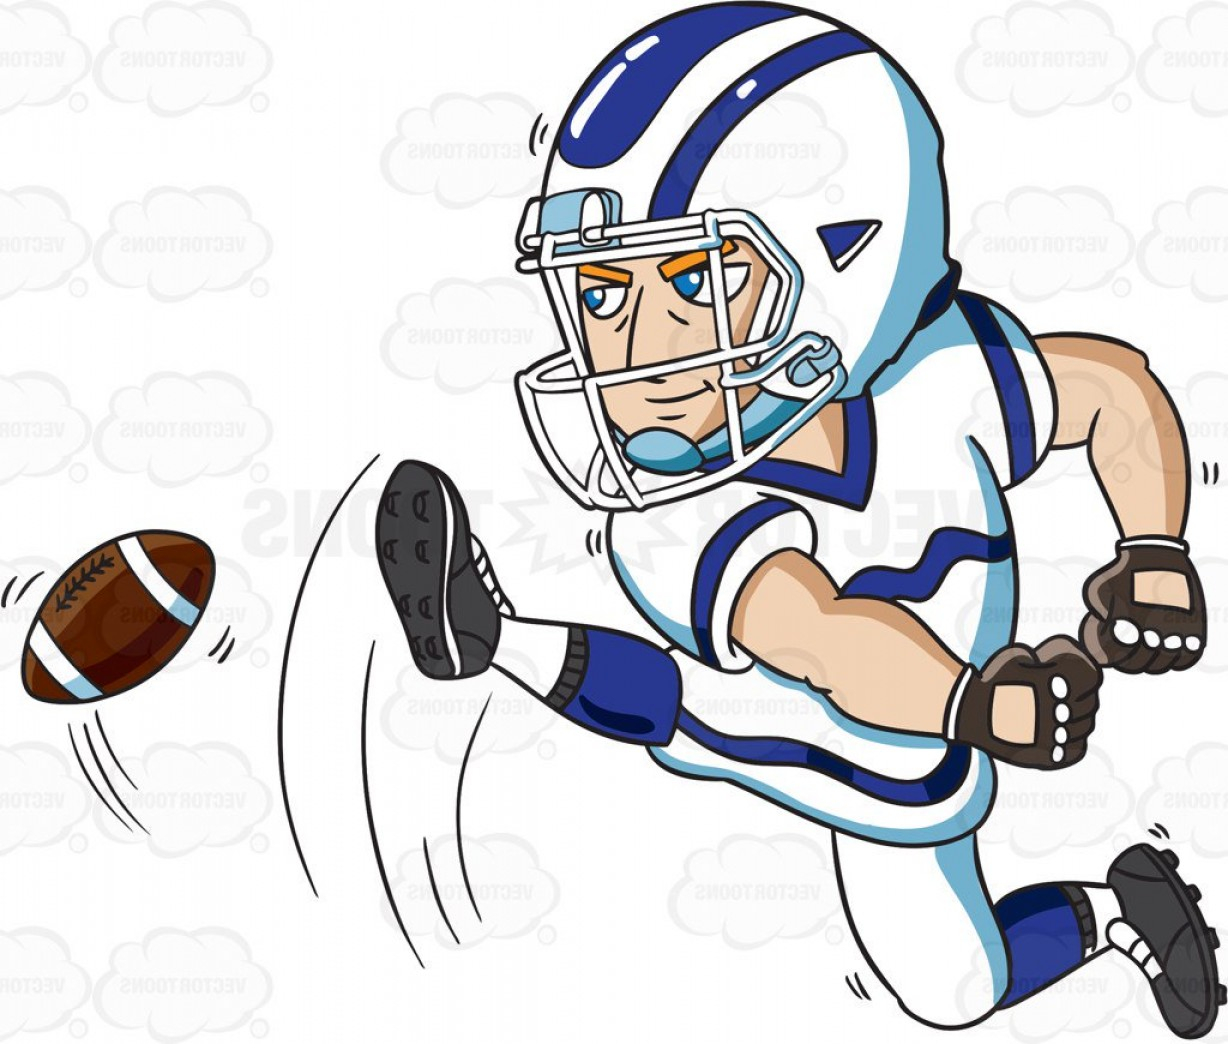 Distressed Football Helmet Vector: A Football Kicker Starting The Play